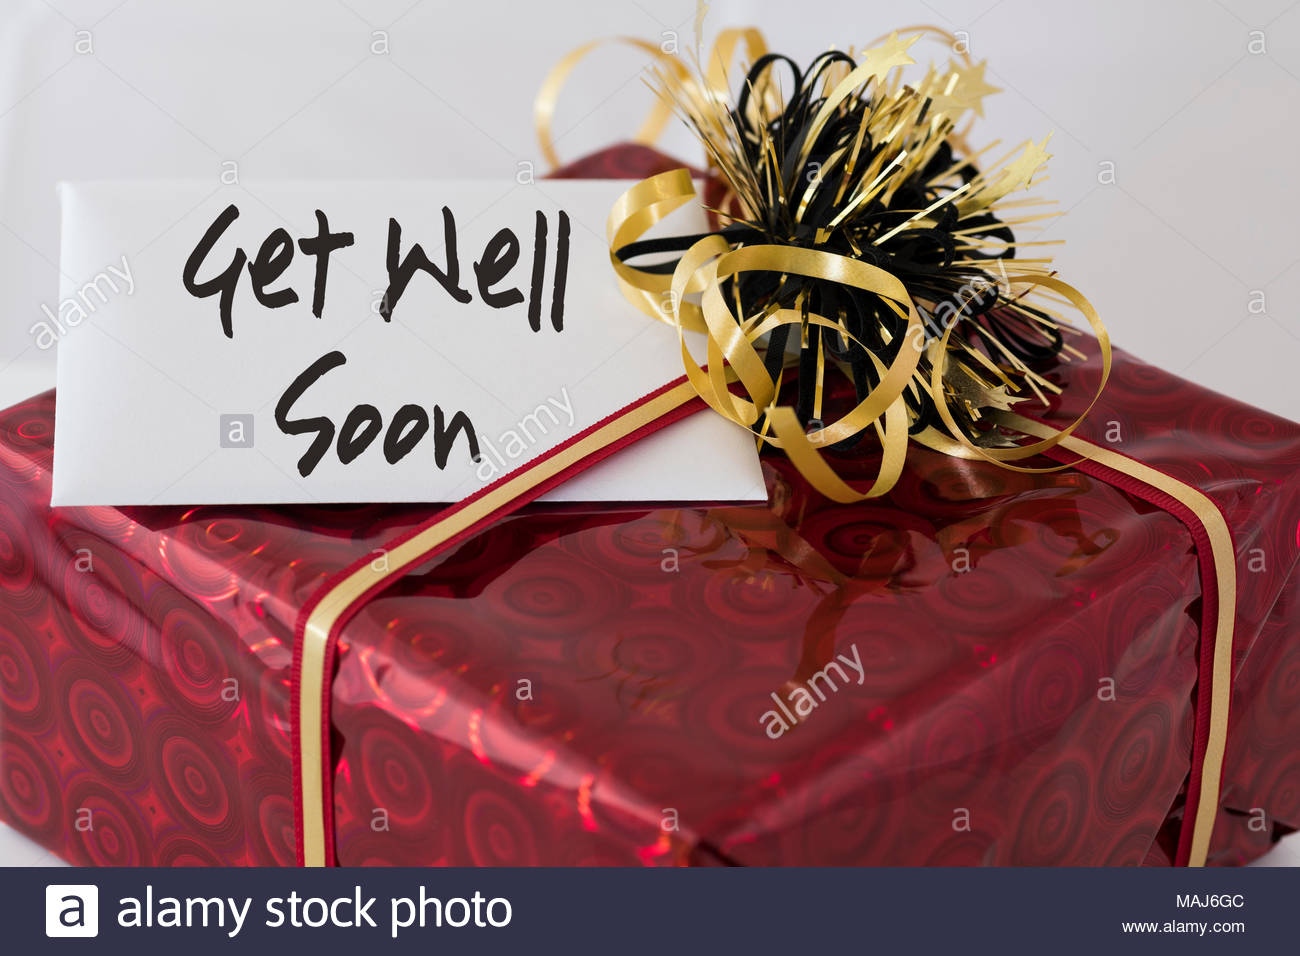 Wrapped Present With The Wording Get Well Soon Written On The Gift